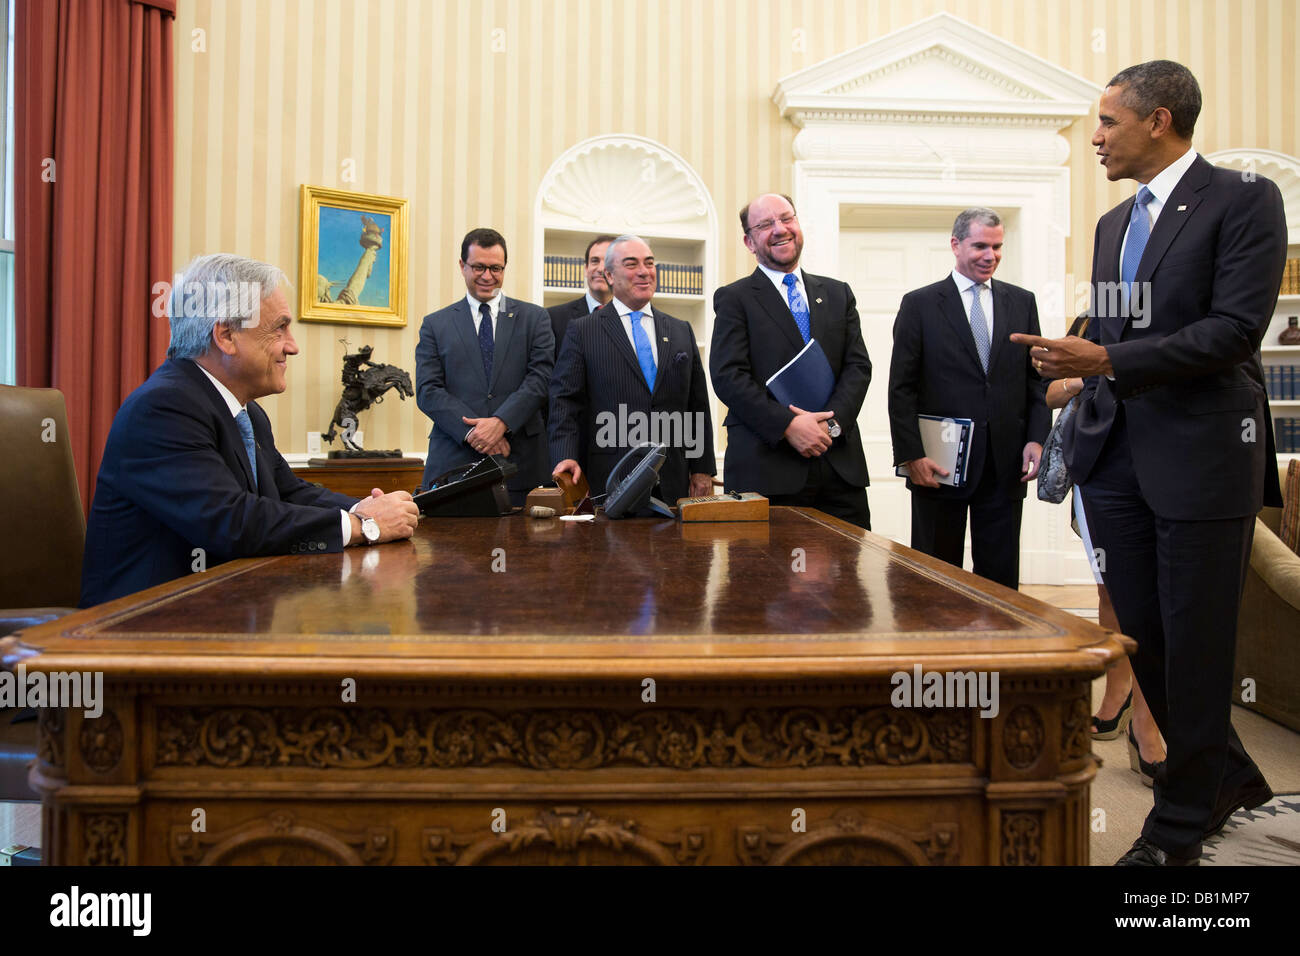 US President Barack Obama jokes with members of the Chilean delegation as President Sebastián Piñera of - Stock Image